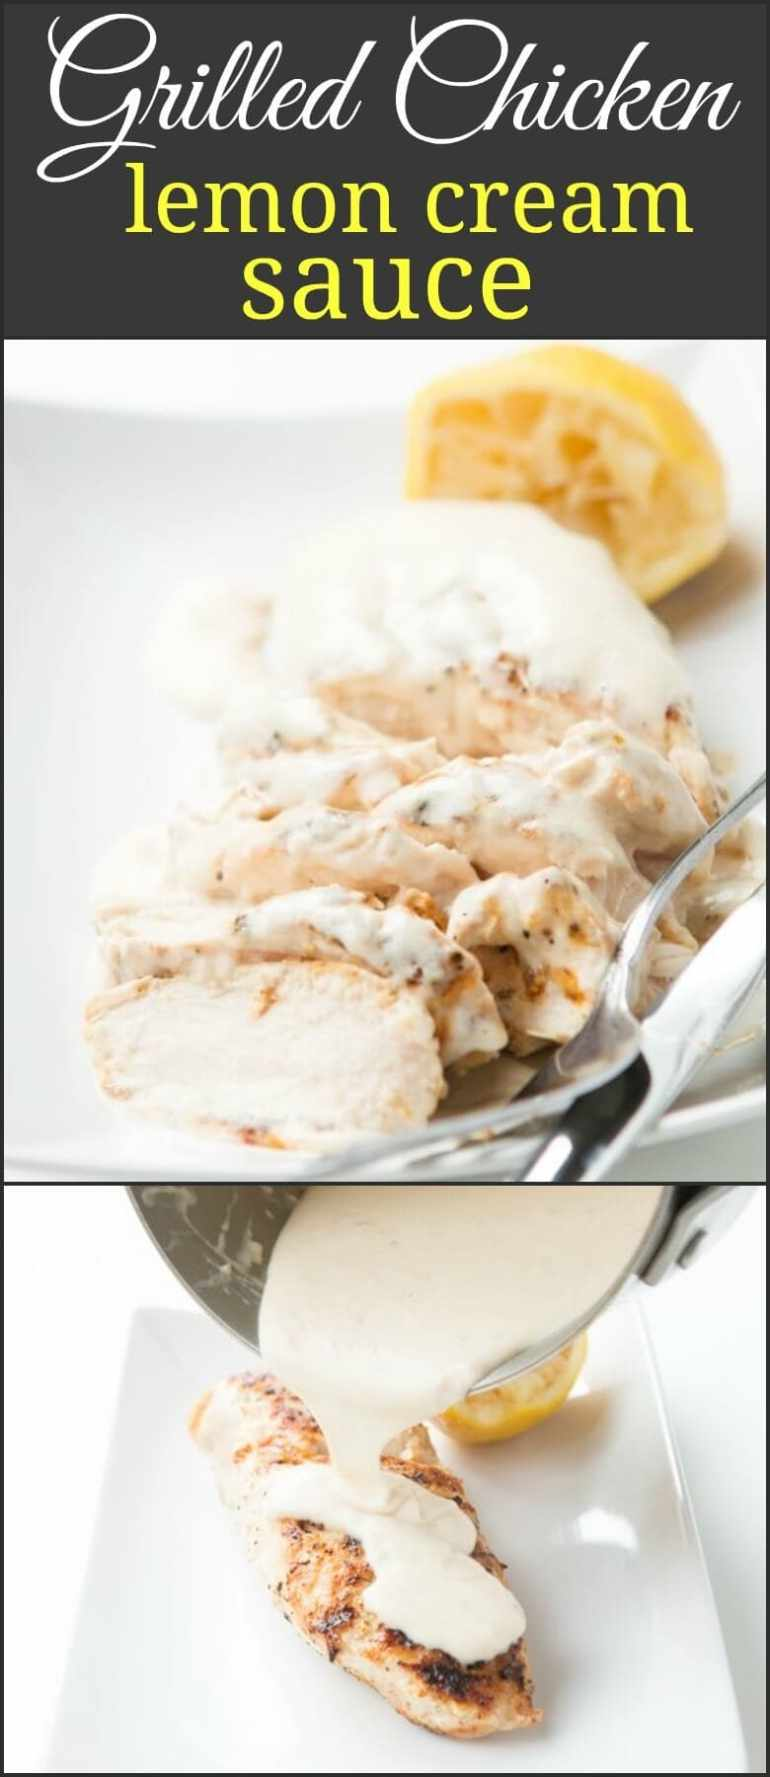 If you don't have your chicken with sauce often or ever, then this Grilled Chicken with Lemon Cream Sauce will change your mind about this duo!